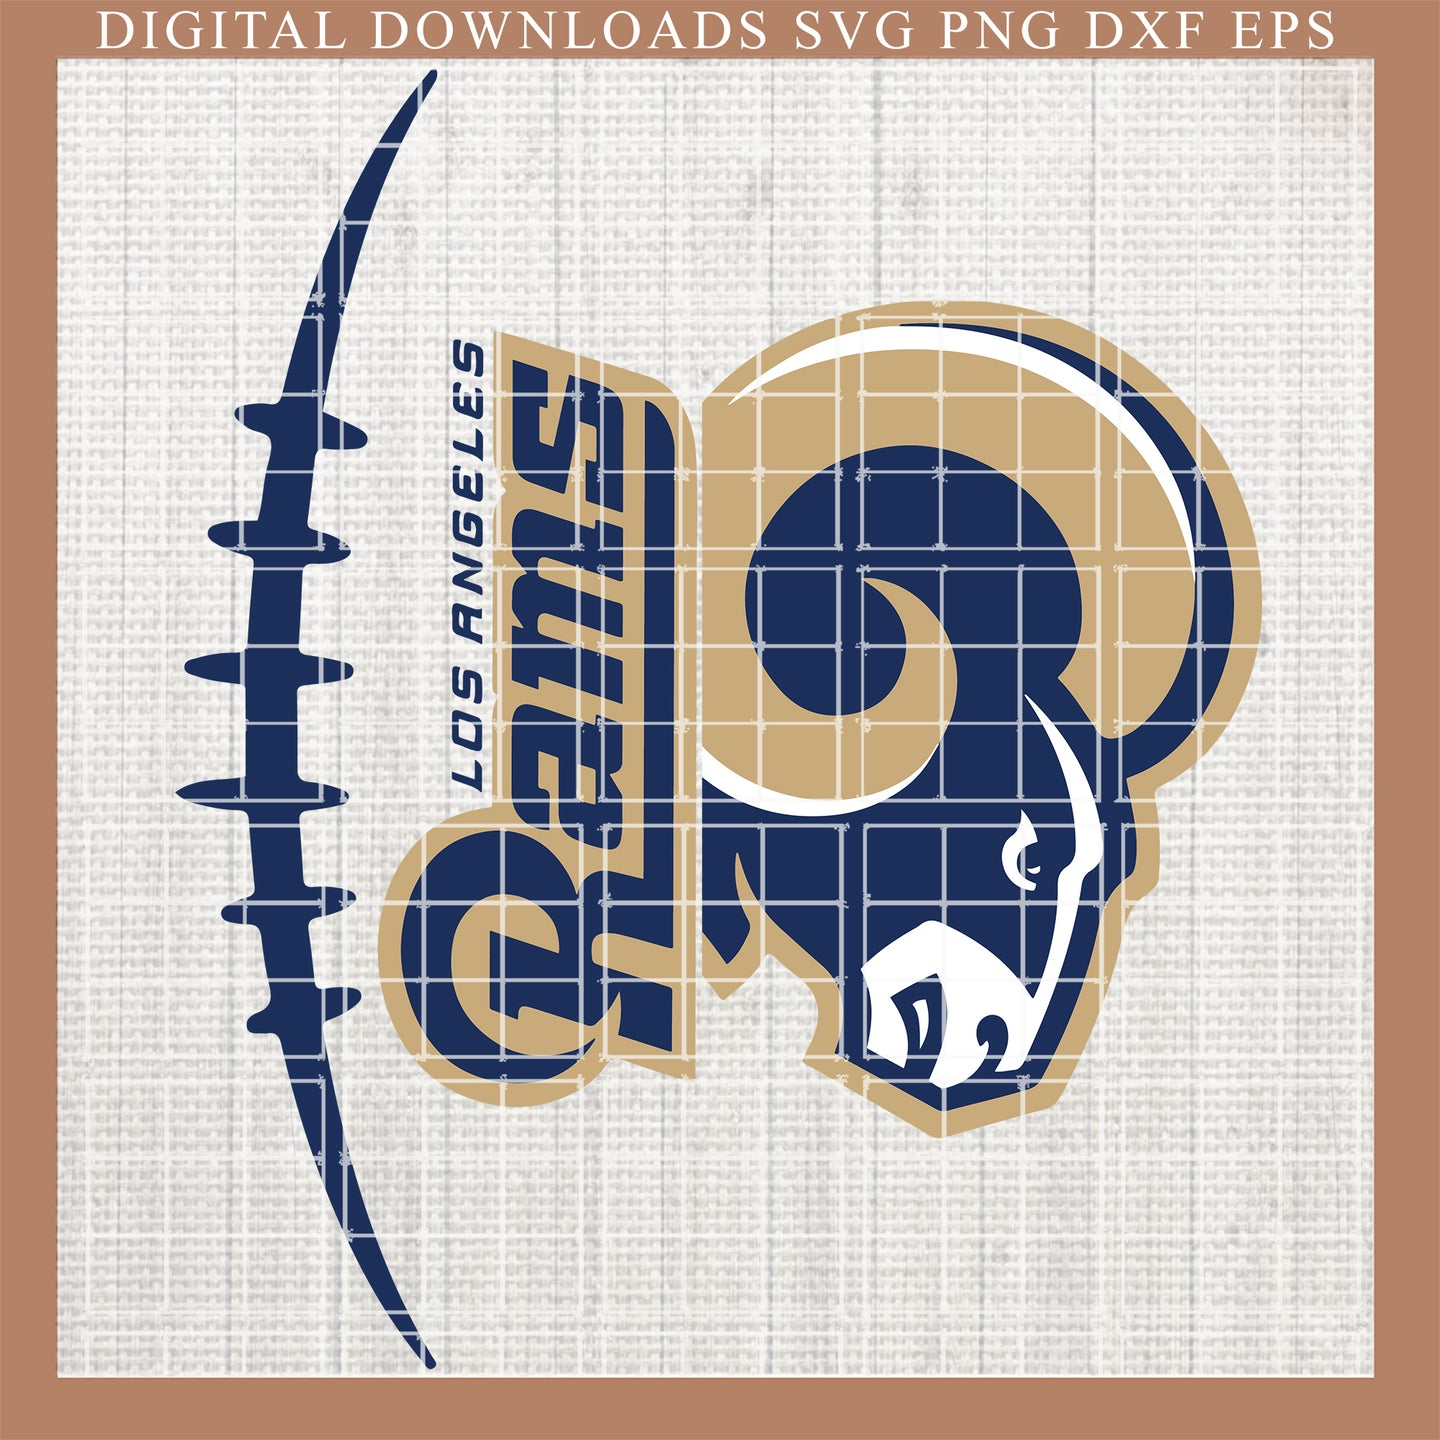 Los Angeles Rams svg, Rams svg , Rams football svg, Rams NFL, Rams skull , Fingerprints, DNA